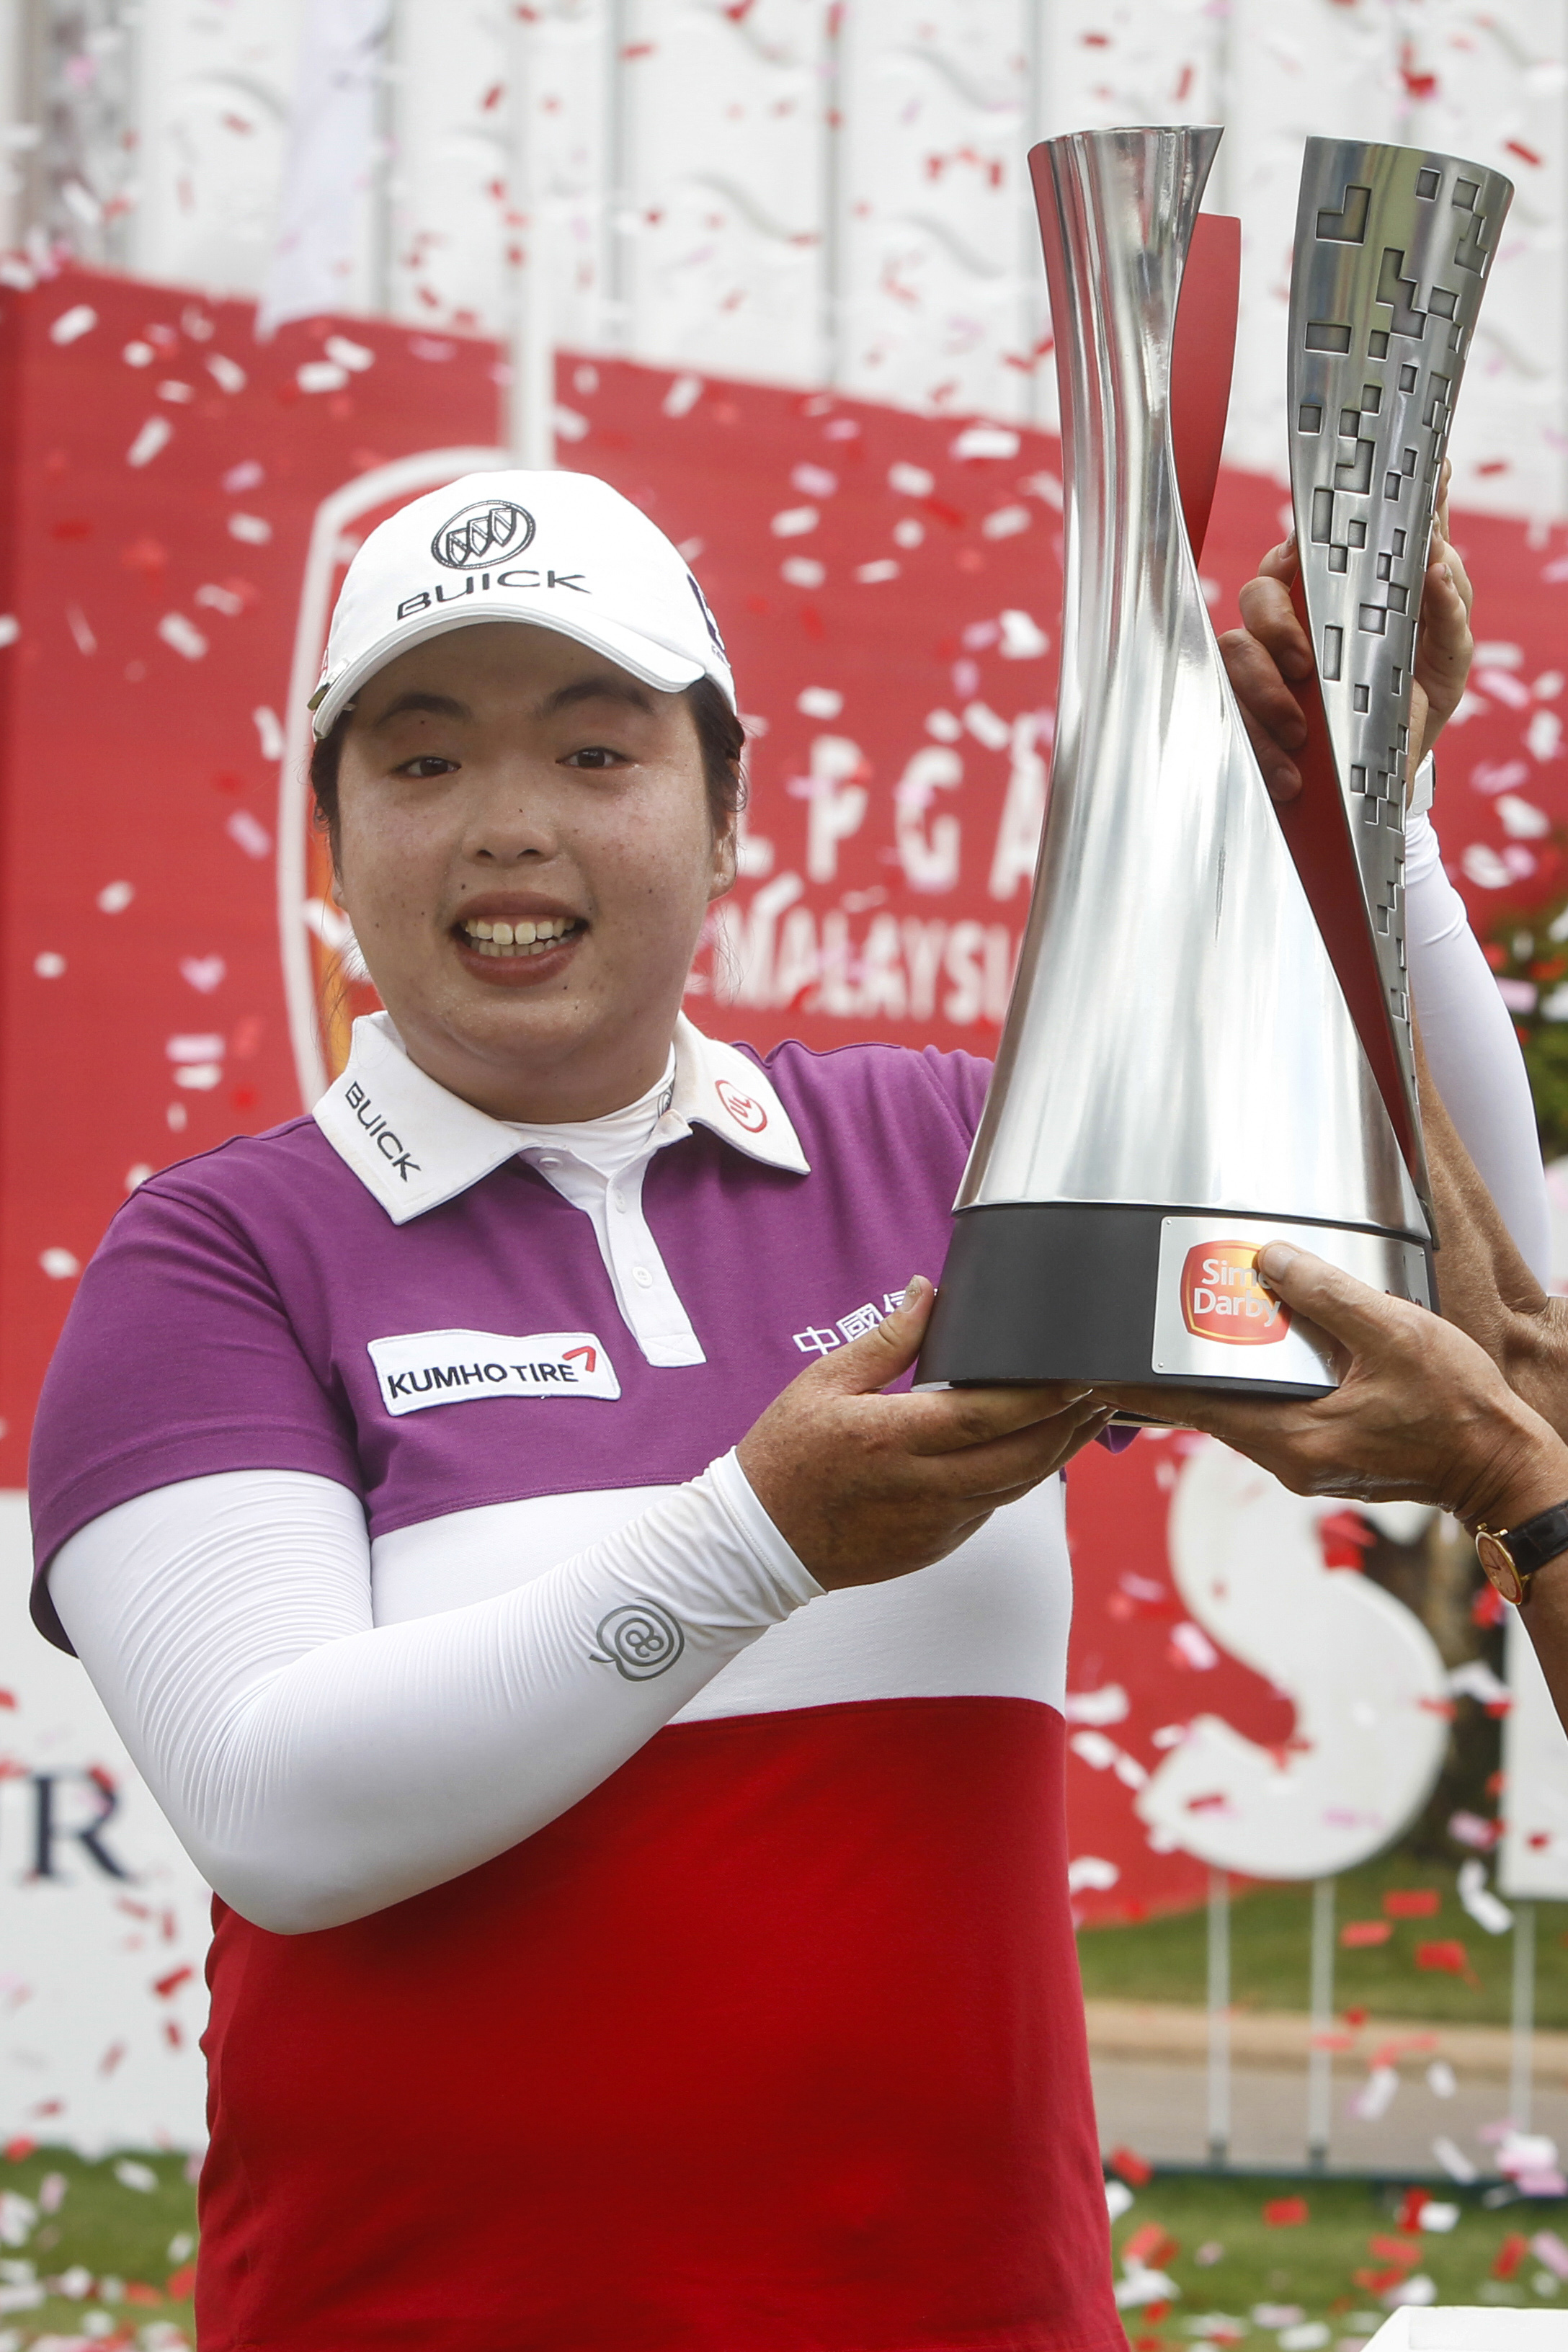 Shanshan Feng of China holds up her trophy after winning the LPGA golf tournament at Tournament Players Club (TPC) in Kuala Lumpur, Malaysia, Sunday, Oct. 30, 2016. (AP Photo/Joshua Paul)